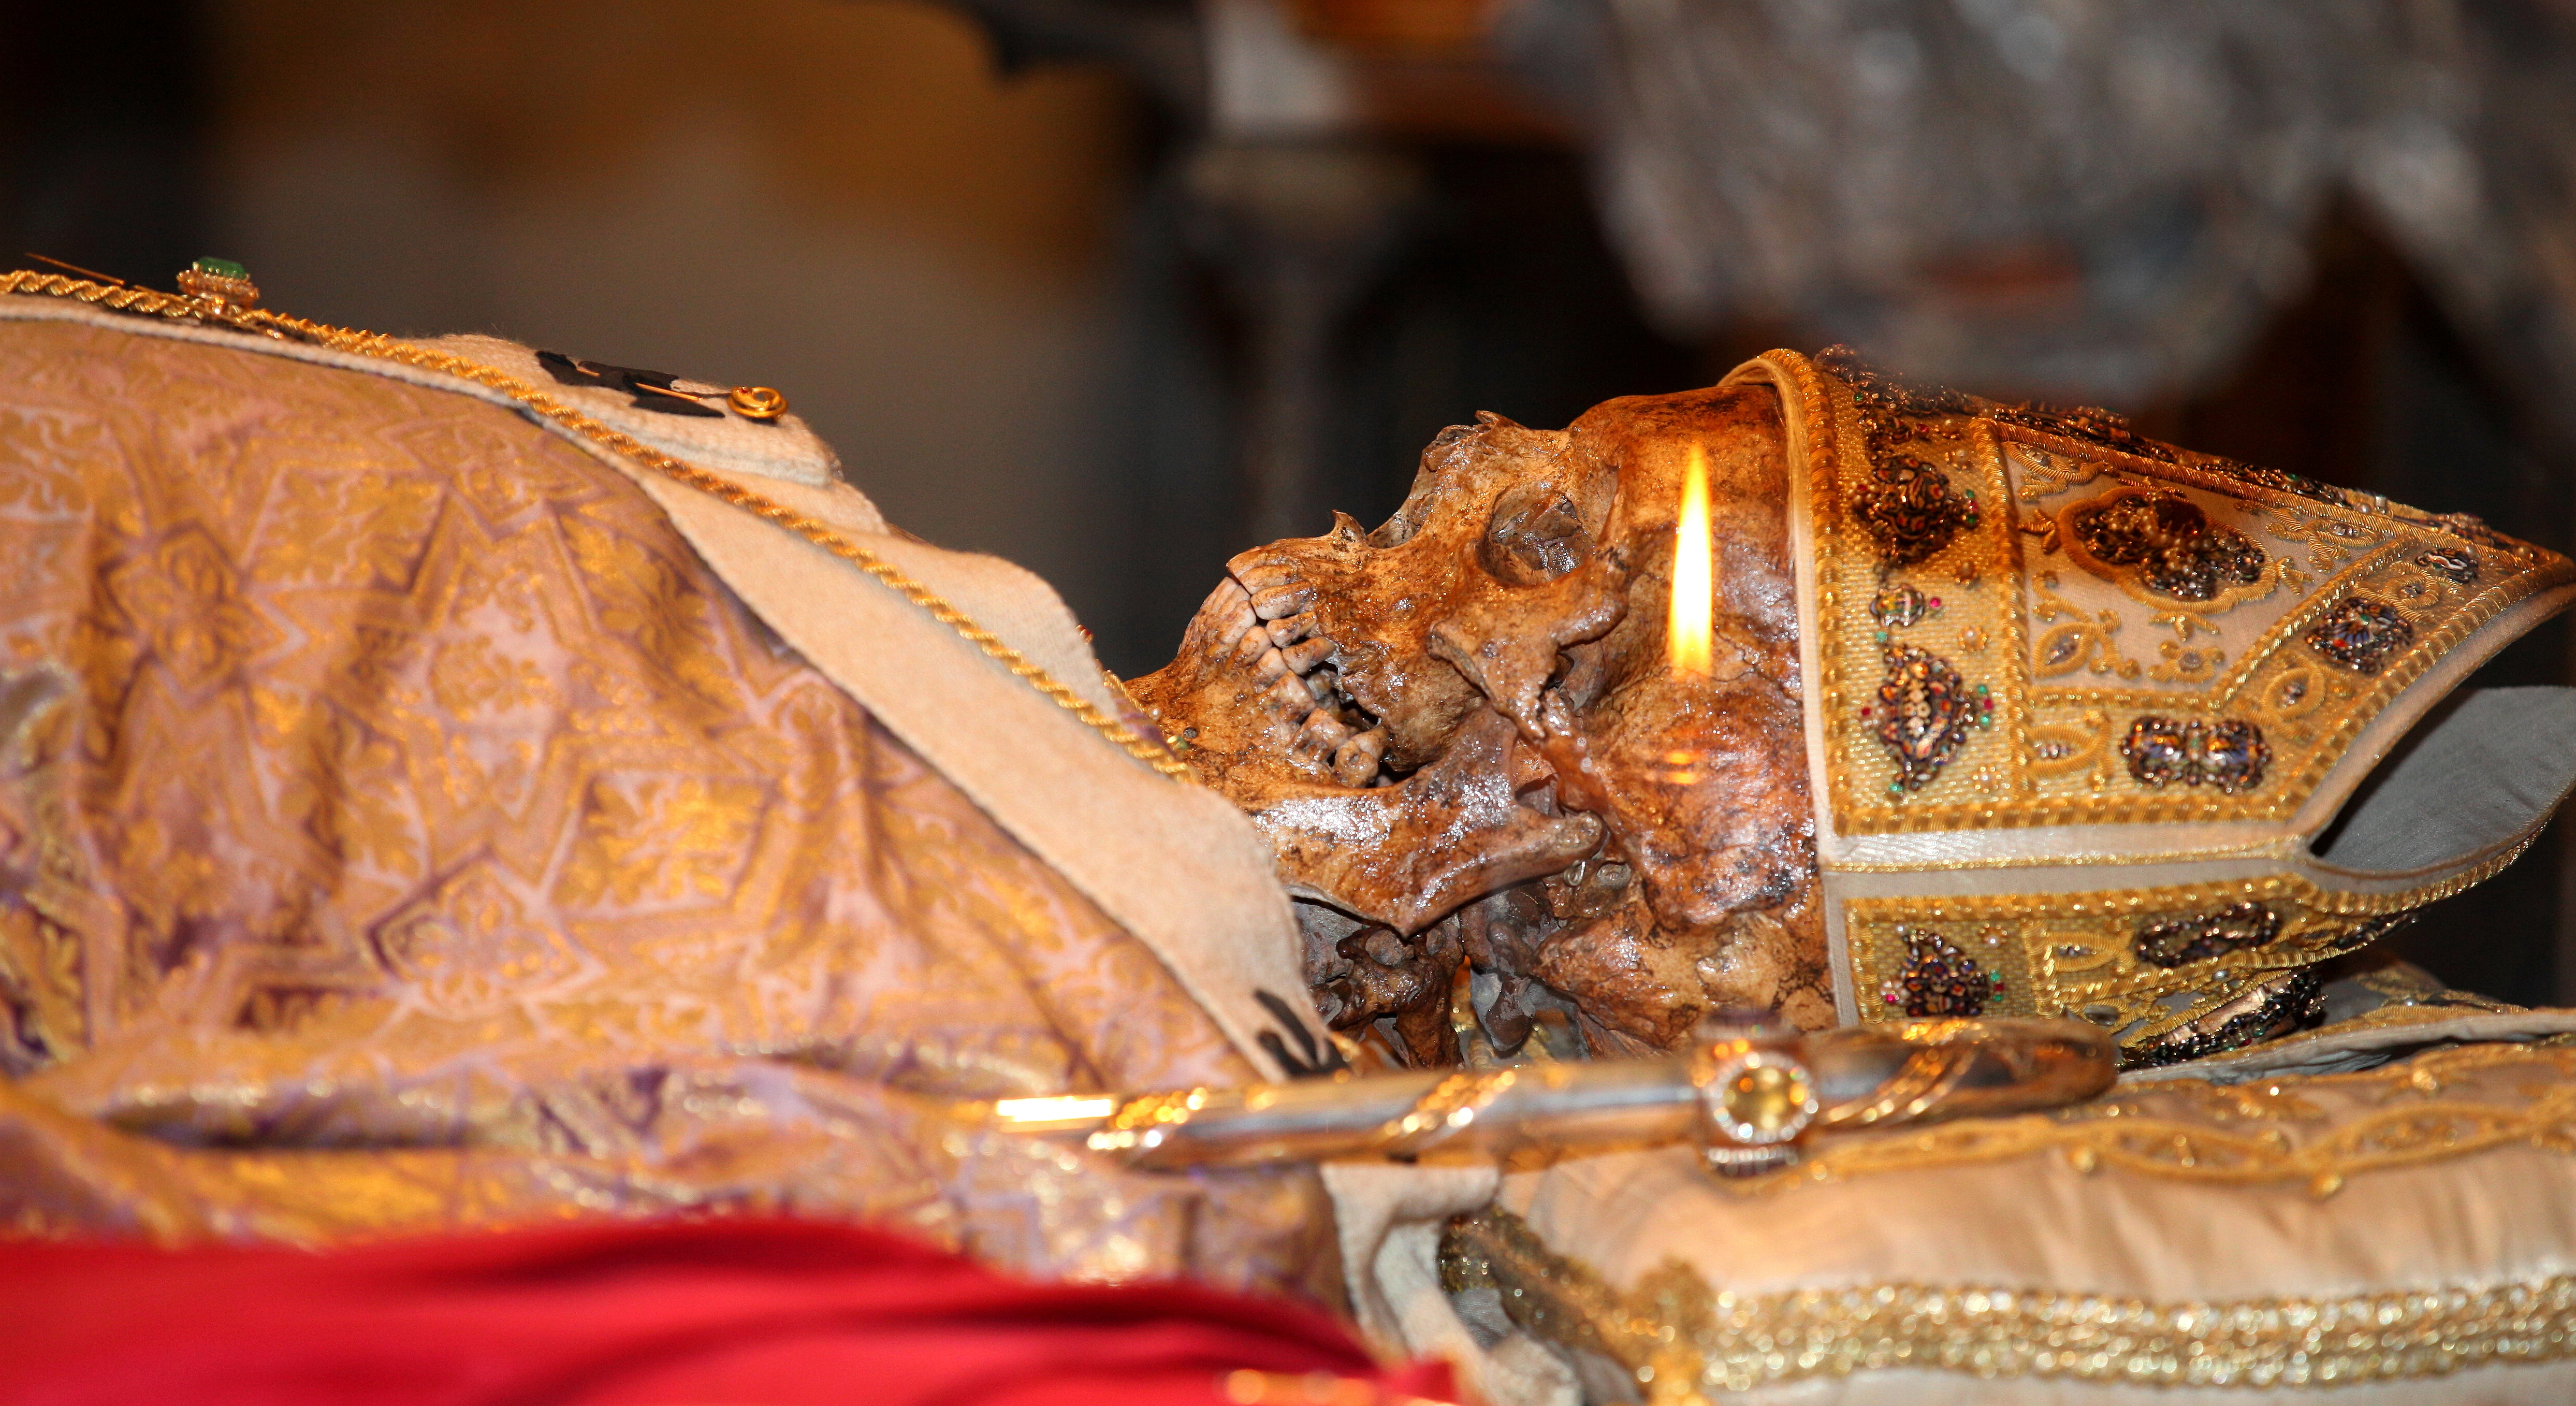 Saint Ambrose relics, Milan, Italy, European Union, August 2013, picture 10